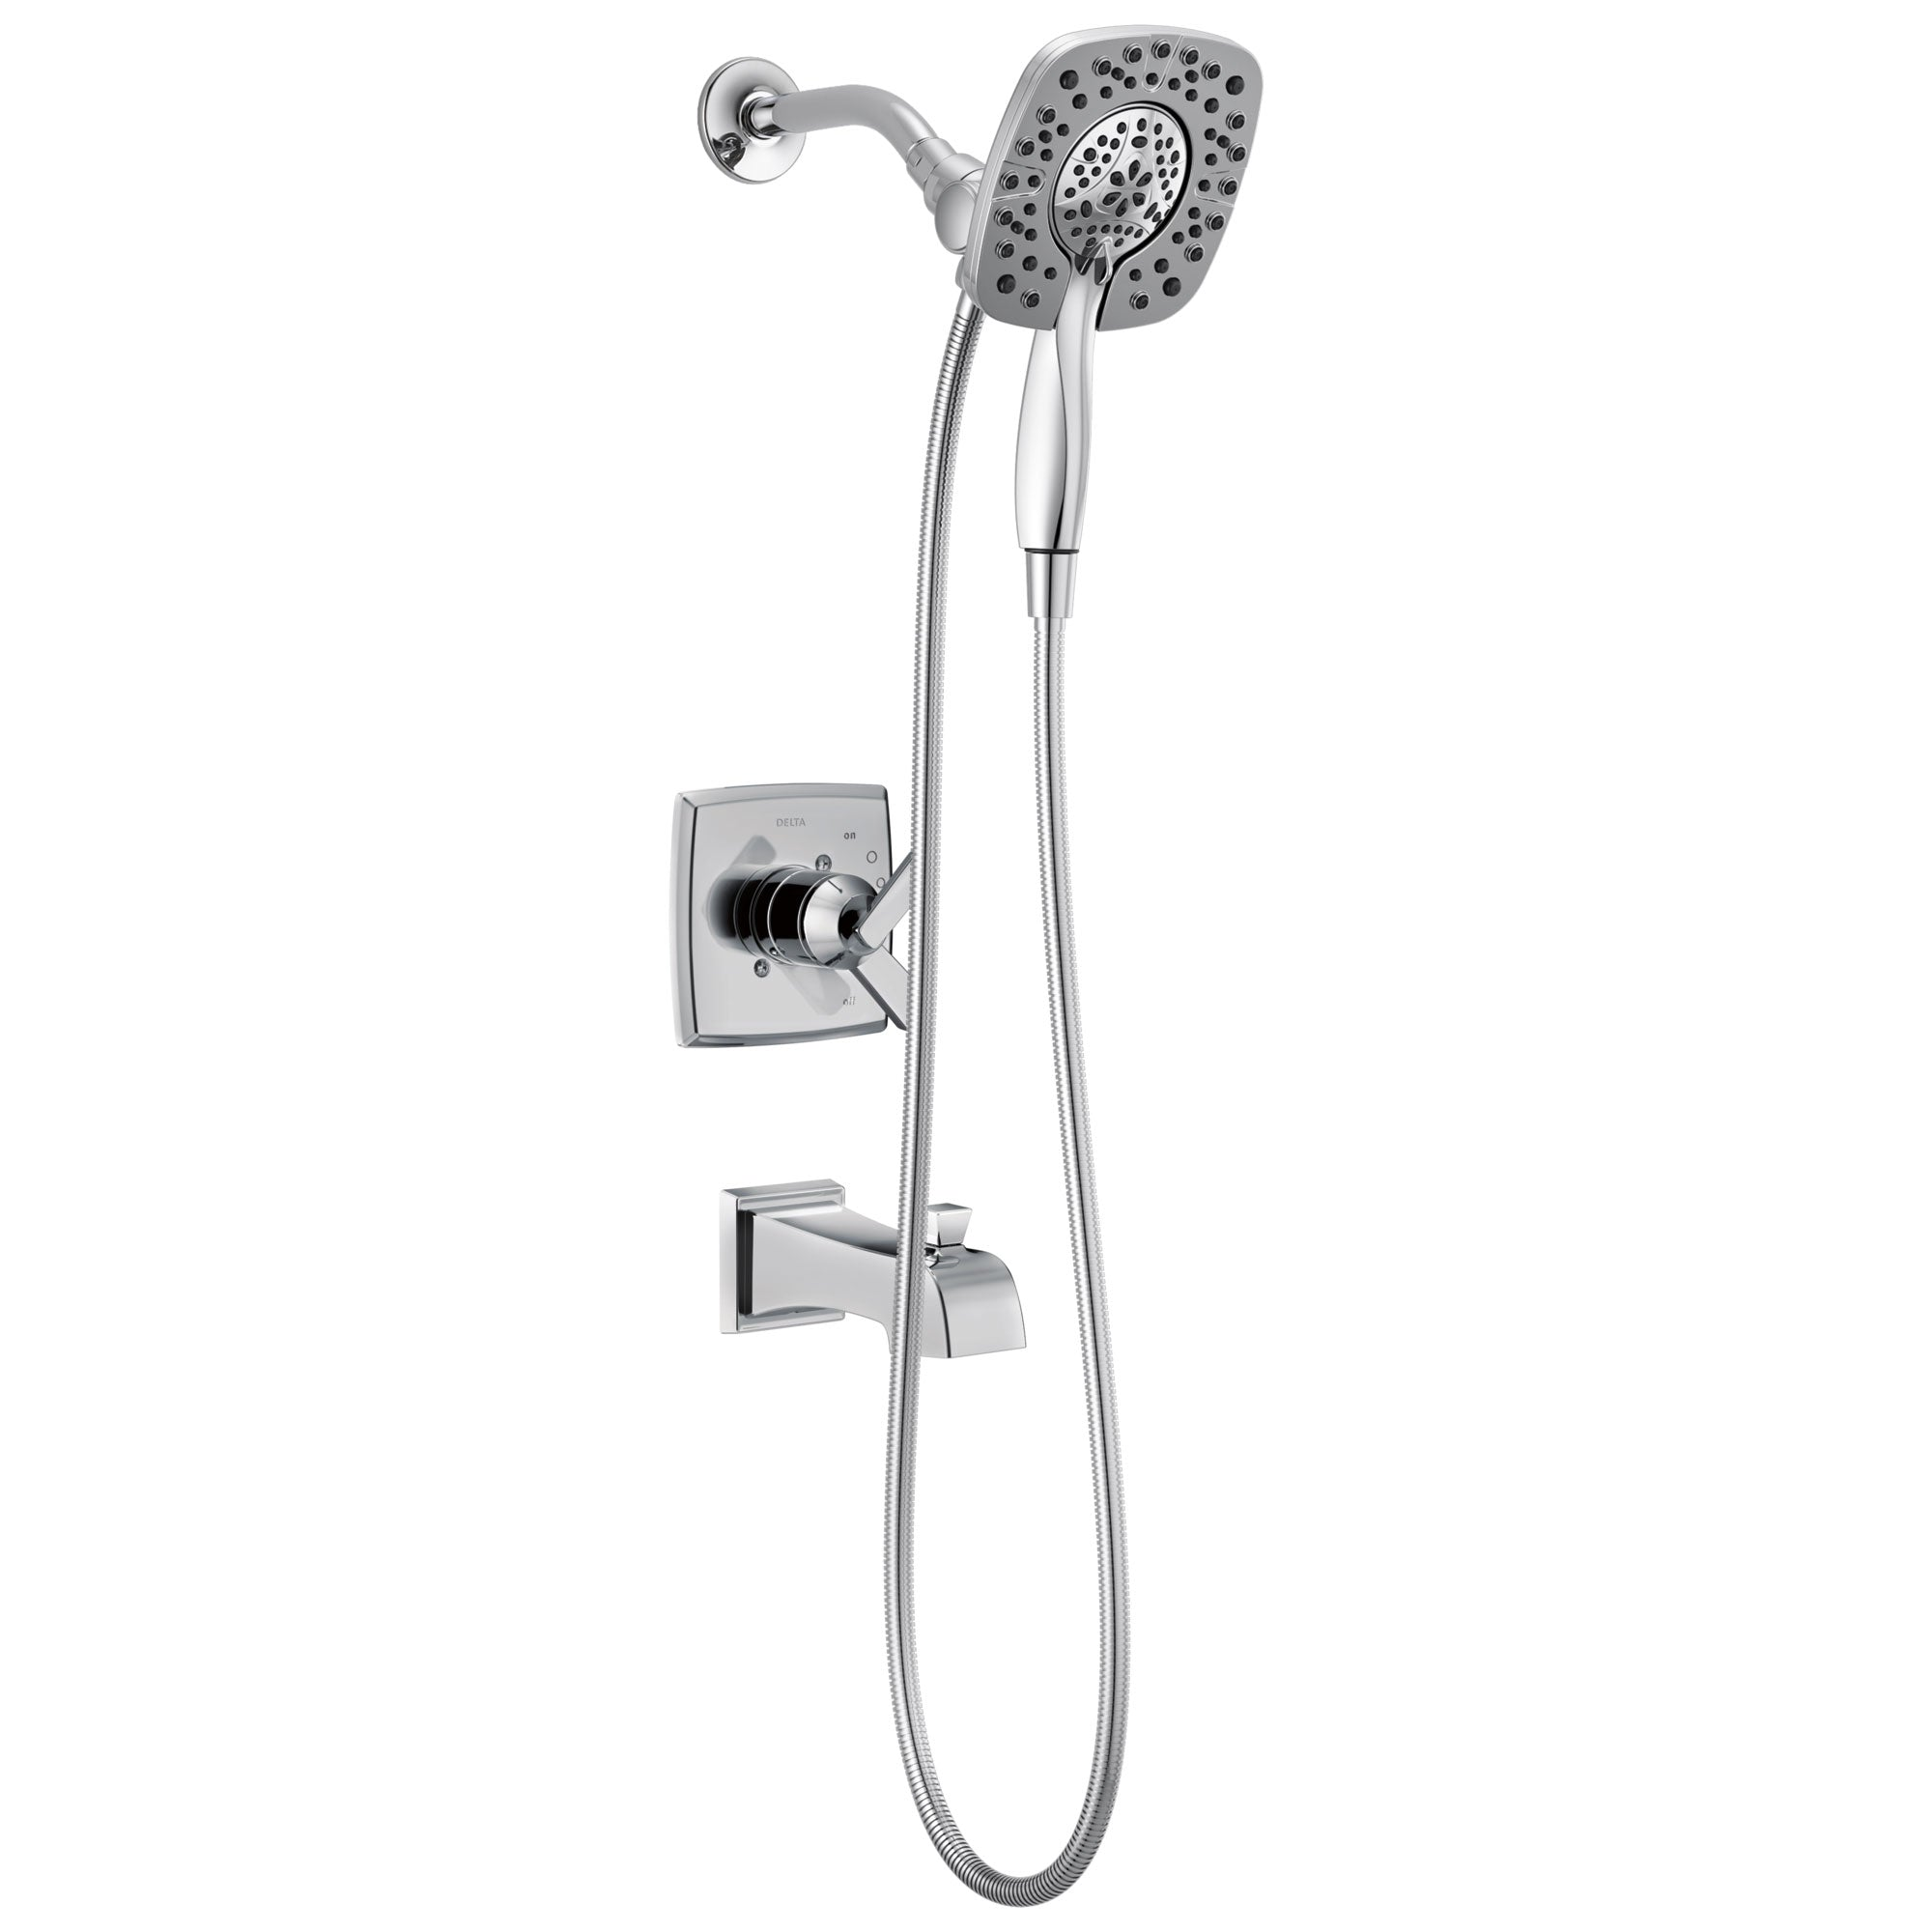 Delta Ashlyn Chrome Finish Monitor 17 Series Tub and Shower Combo Faucet with In2ition Two-in-One Hand Shower Spray INCLUDES Rough-in Valve D1122V